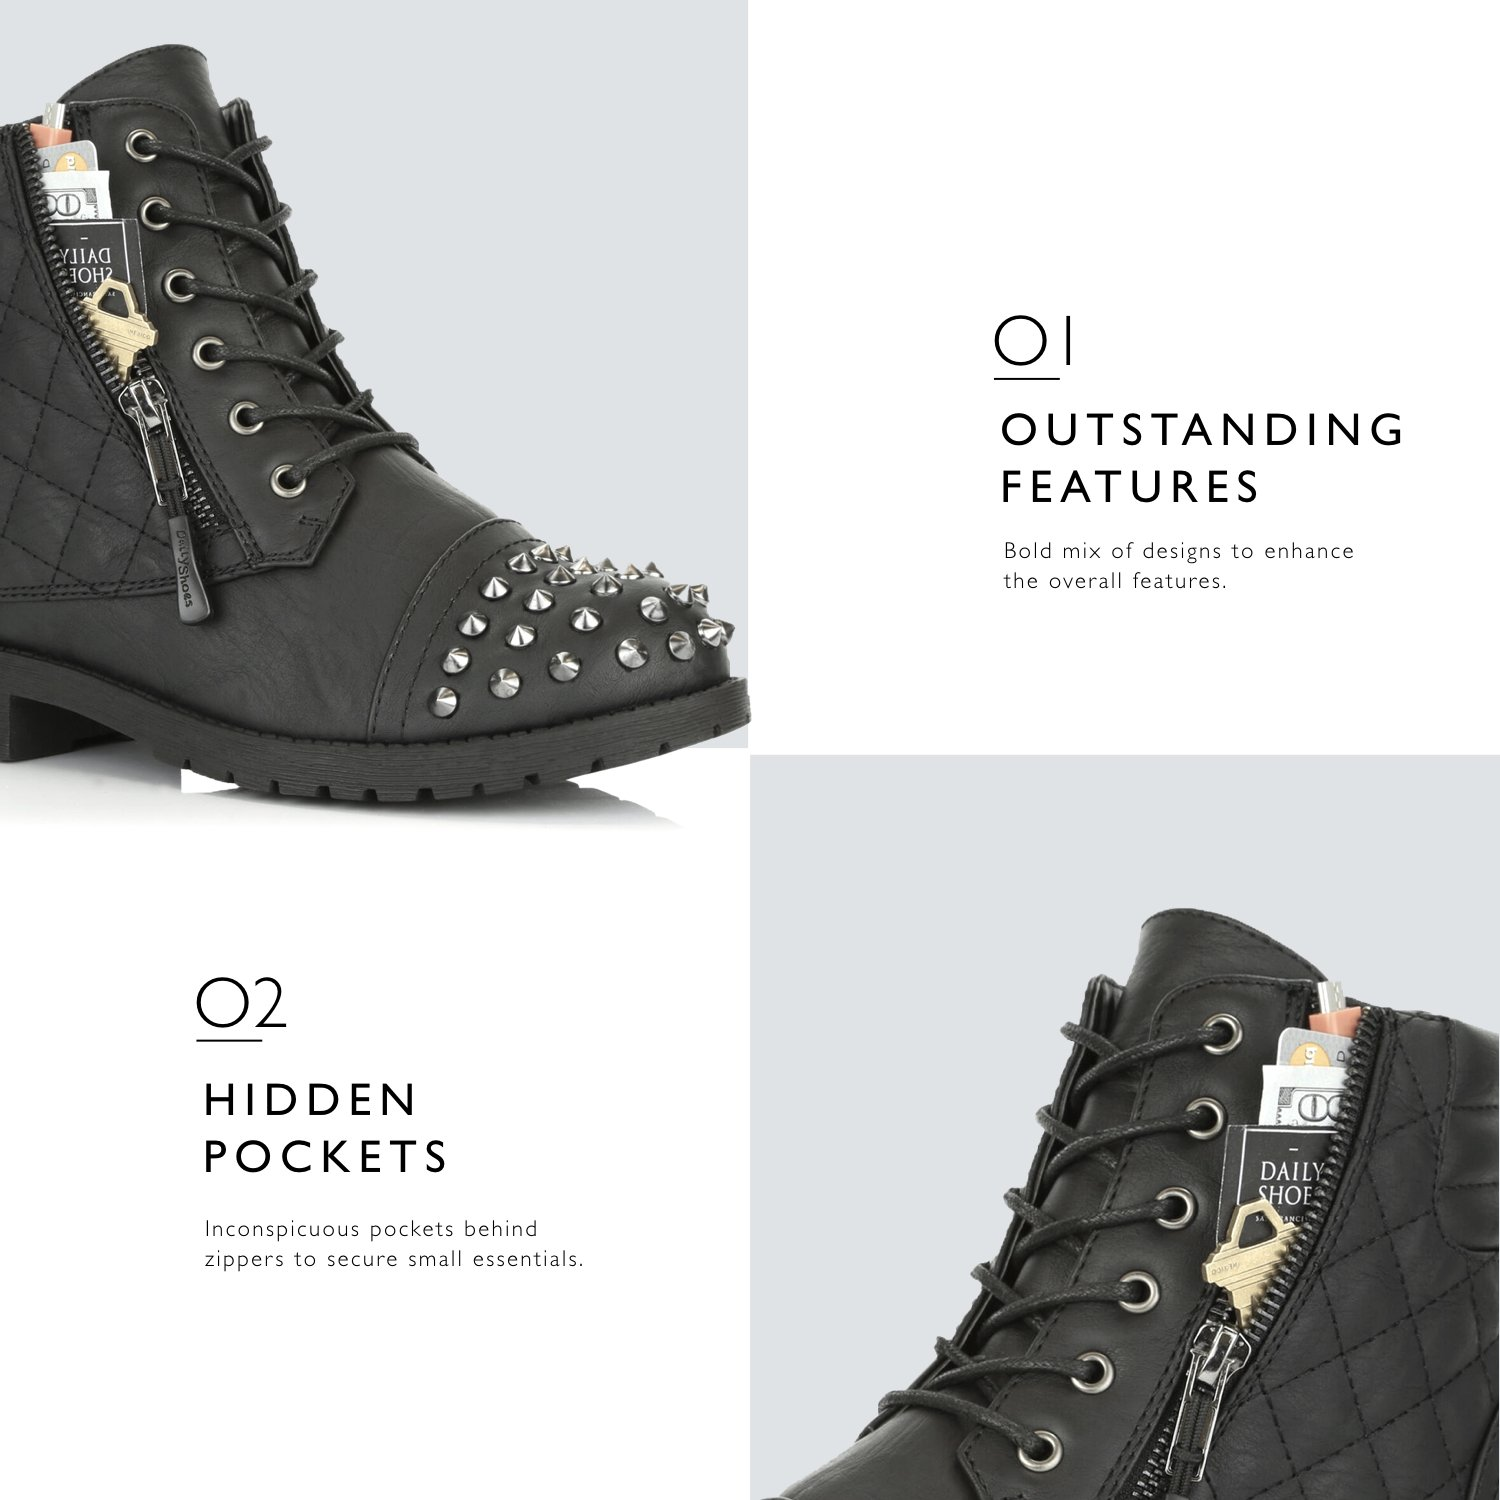 DailyShoes Women's Military Lace up Buckle Combat Boots Ankle High Exclusive Credit Card Pocket Frontal Metal Stud Hiking Booties, Black PU, 11 B(M) US by DailyShoes (Image #4)